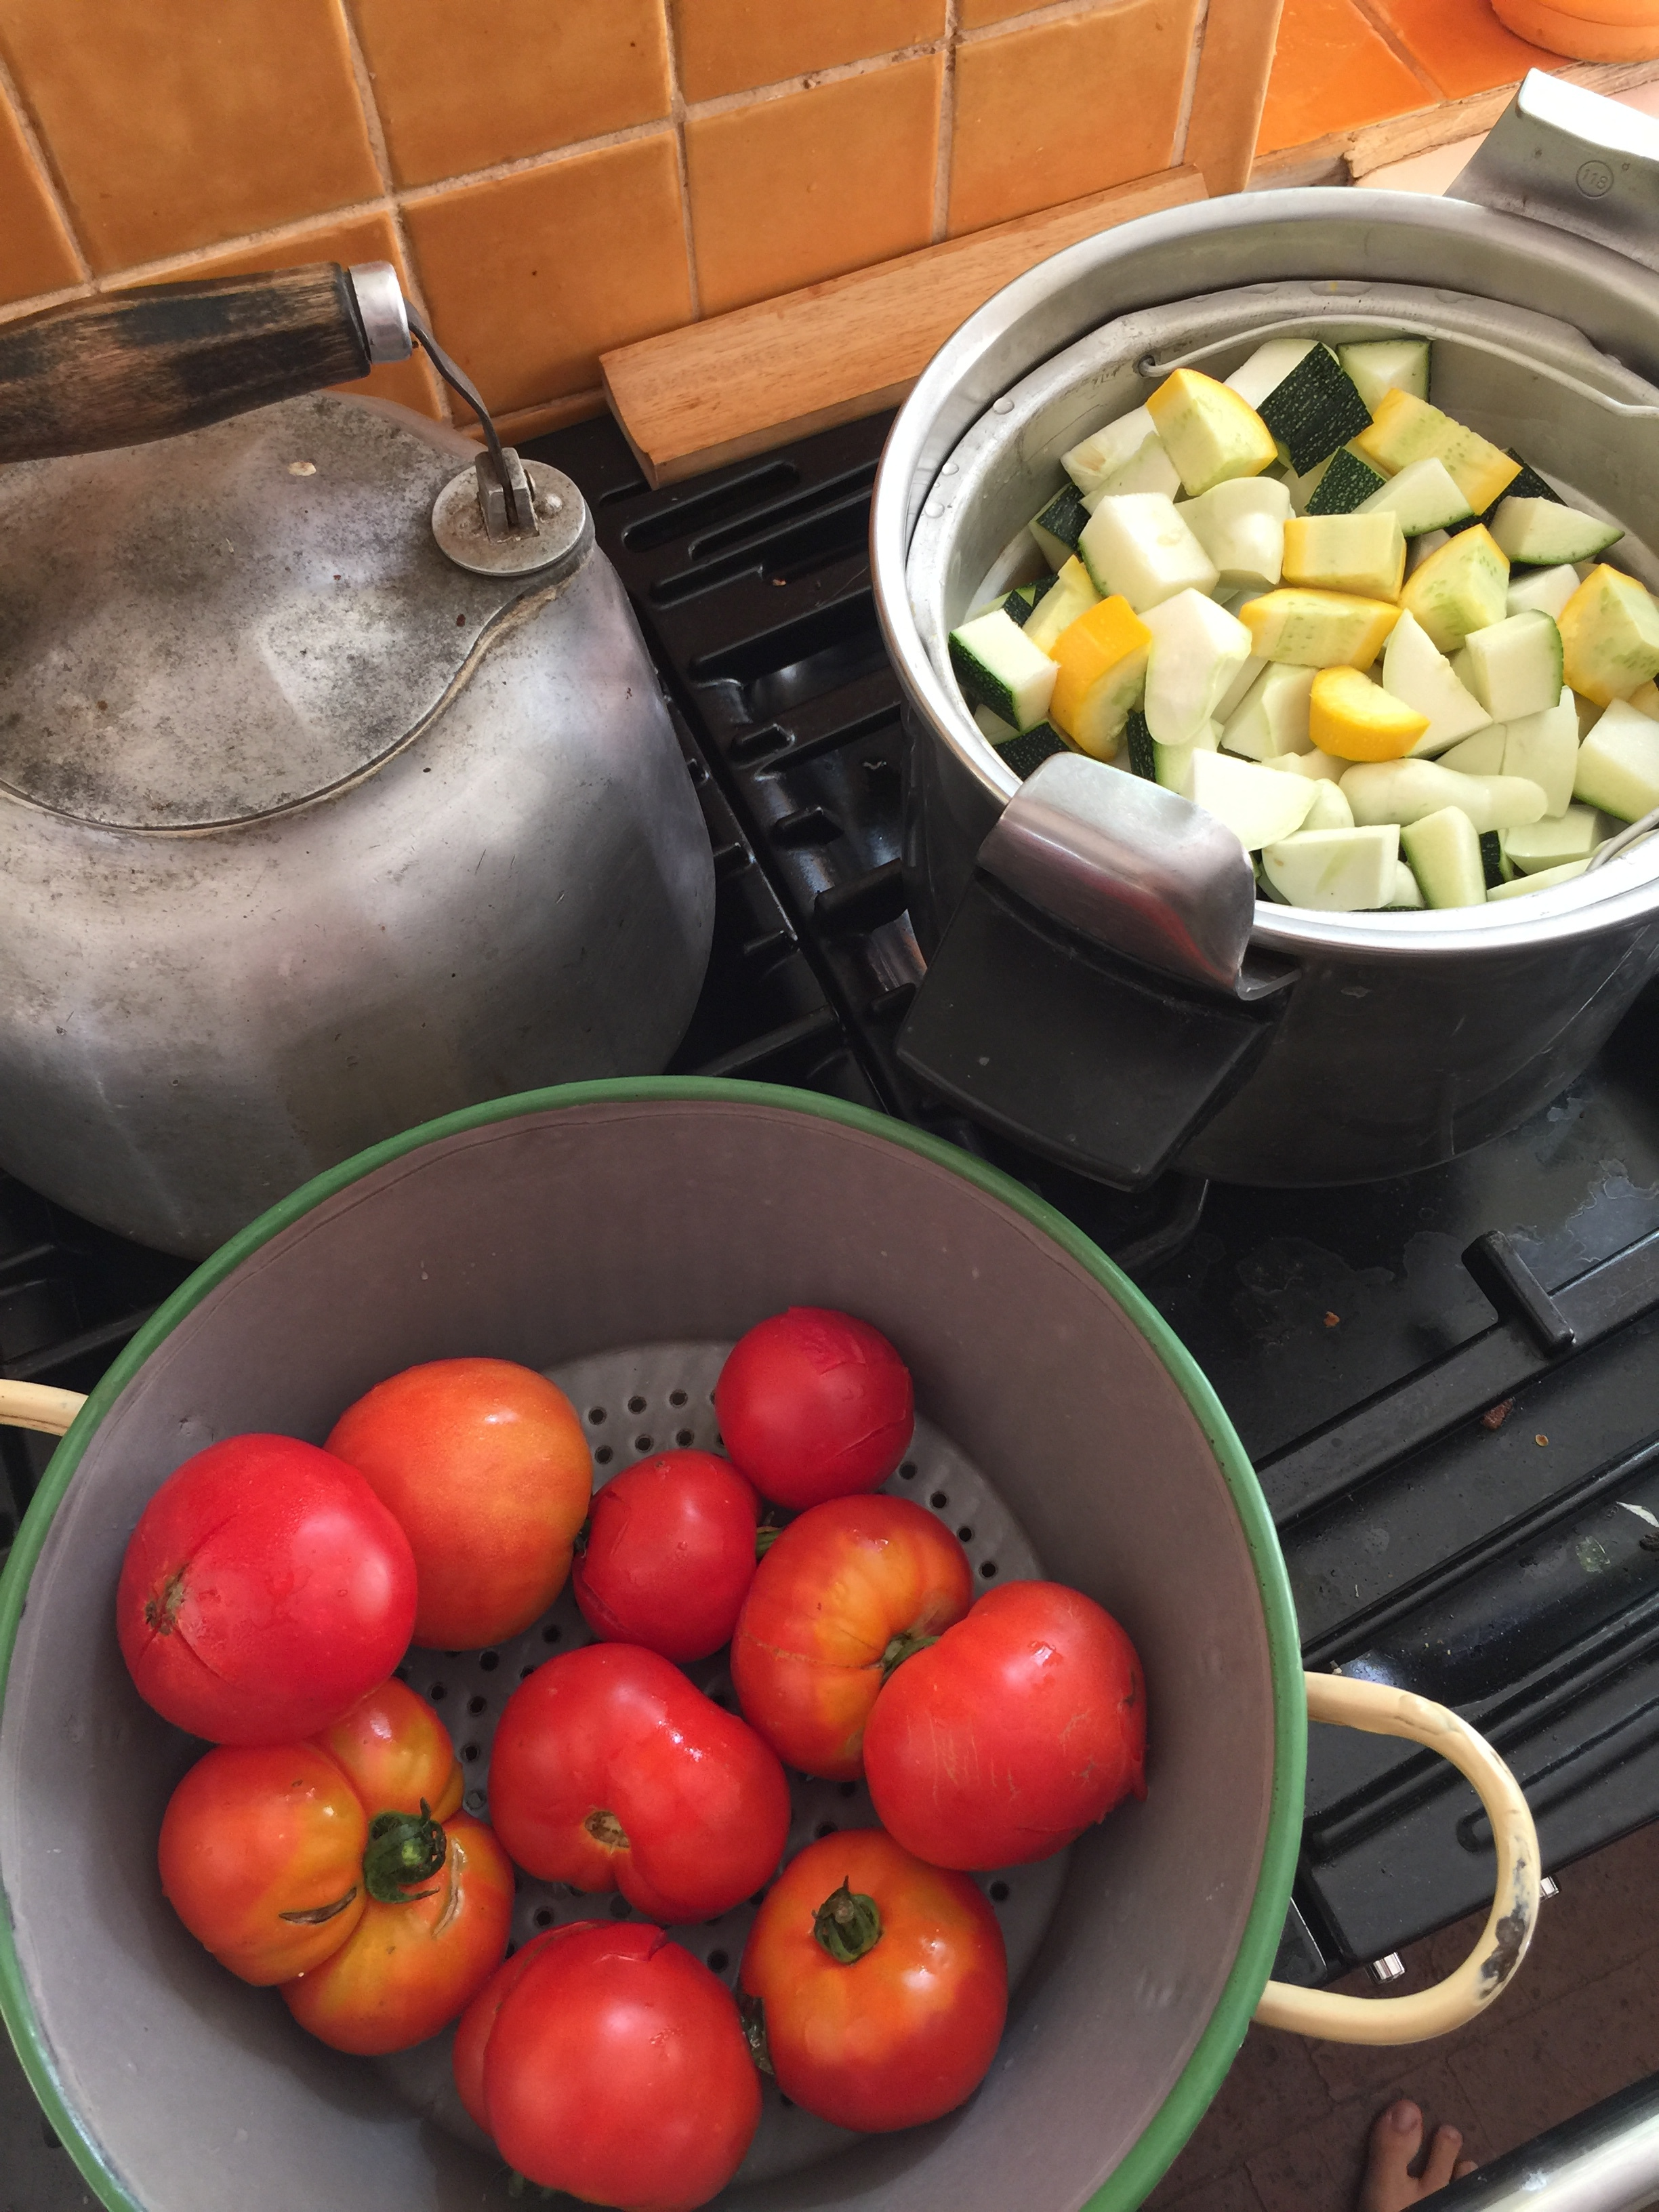 By steaming the vegetables and peeling/ seeding the tomatoes, you're increasing digestibility. This isn't necessary, but ancestrally it was common practice with tomatoes.